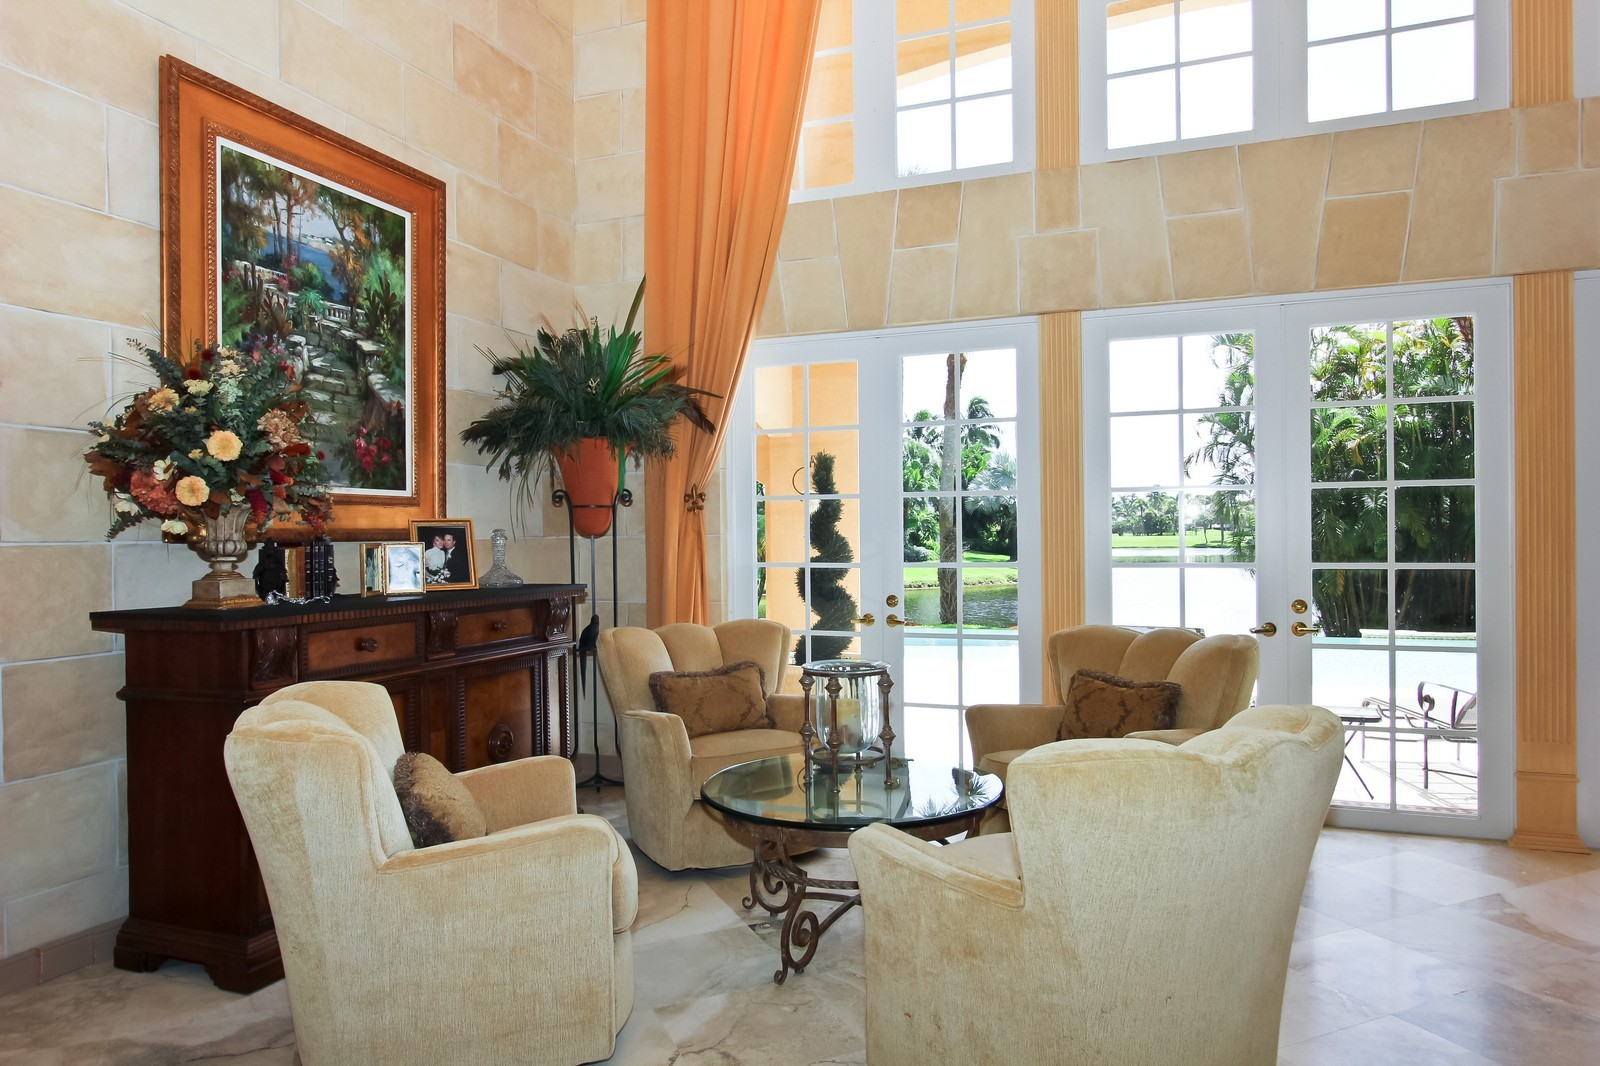 Real Estate Photography - 7015 Ayrshire Ln, Boca Raton, FL, 33496 - Living Room Seating Area